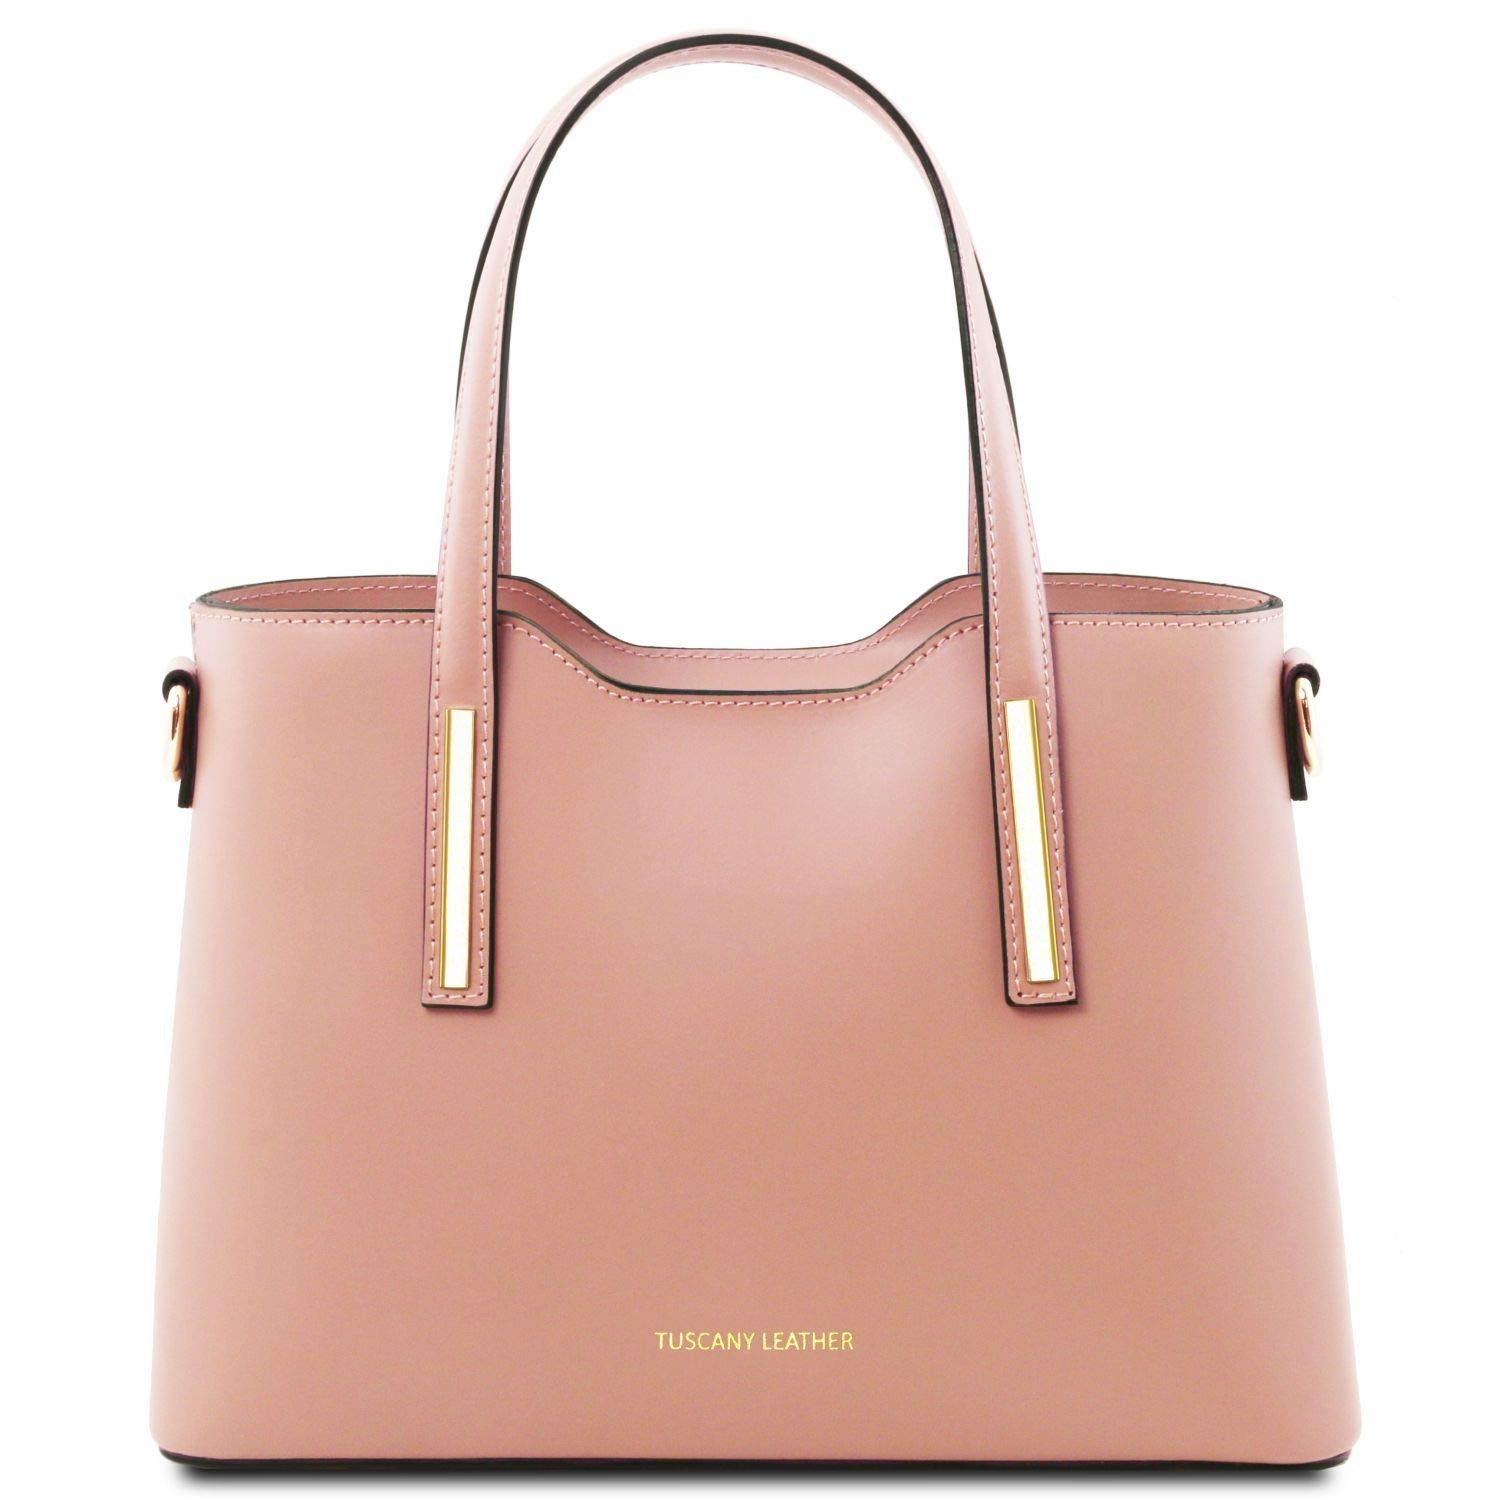 Ballet Pink Tuscany Leather Olimpia  Ruga leather tote  Small size  TL141521